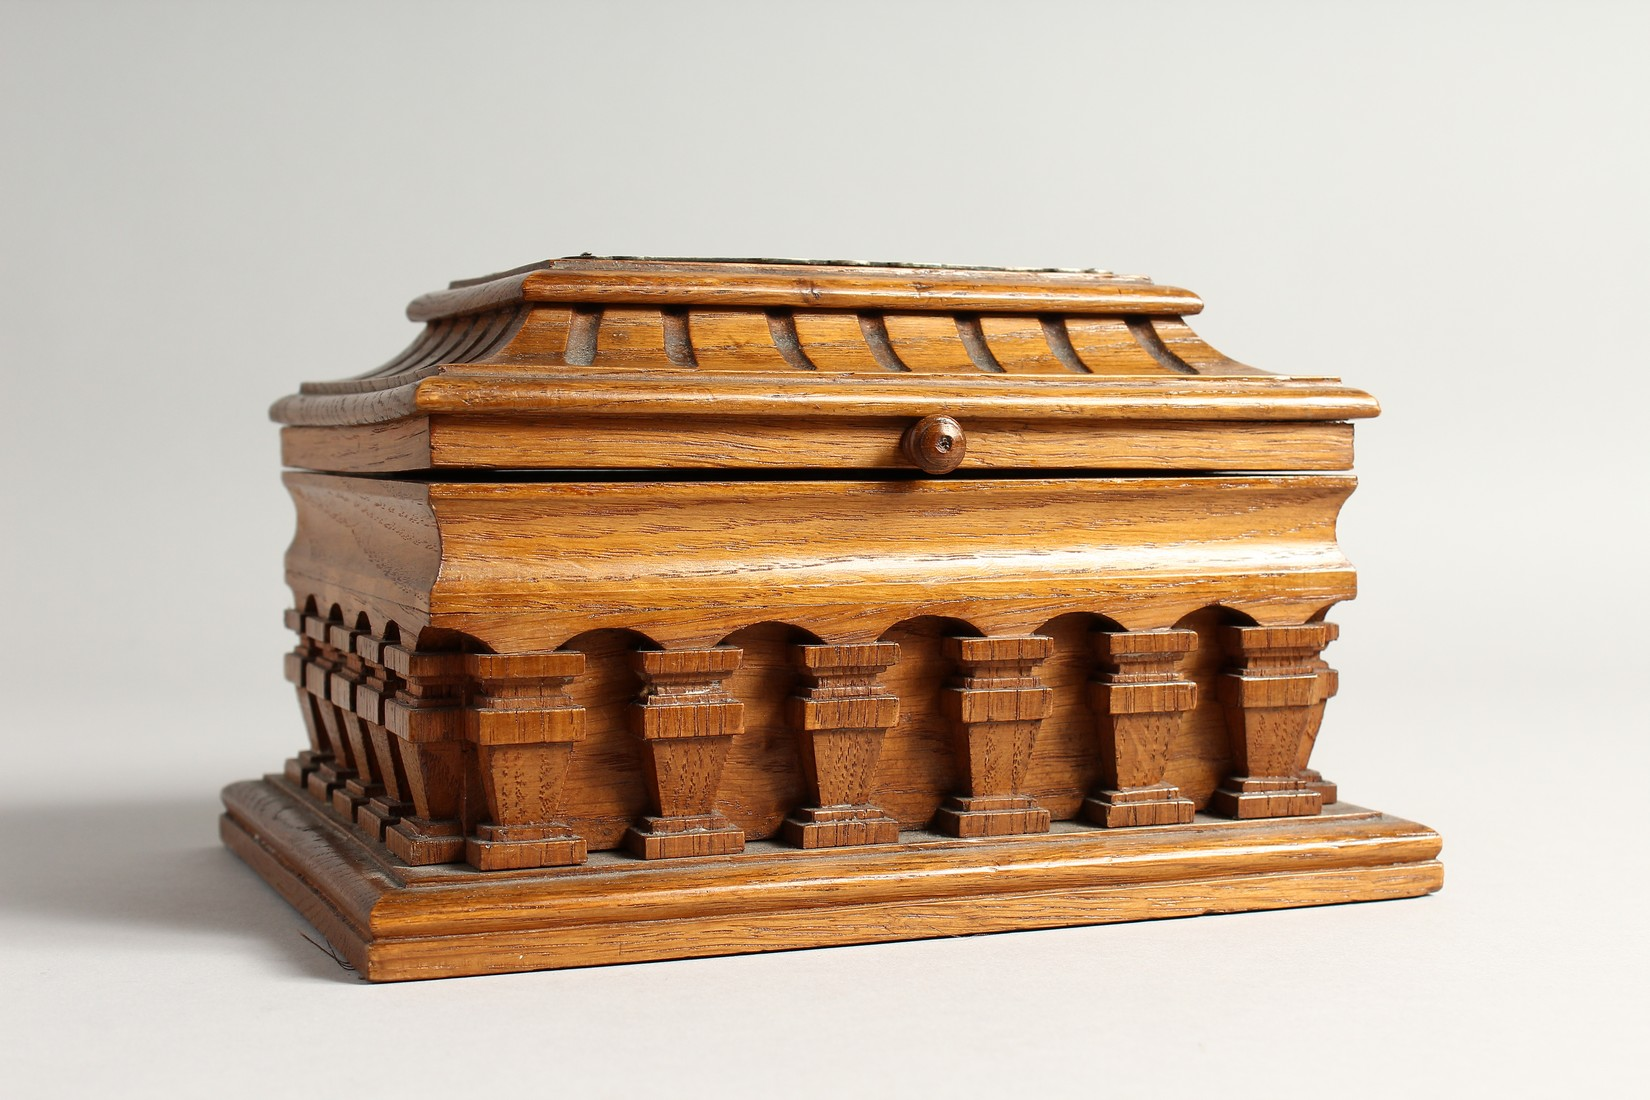 AN OAK CASKET with a silver plaque, OTTO VON BISMARCK, and paper label, ST AATLICHES MUSEUM. 9ins - Image 4 of 7